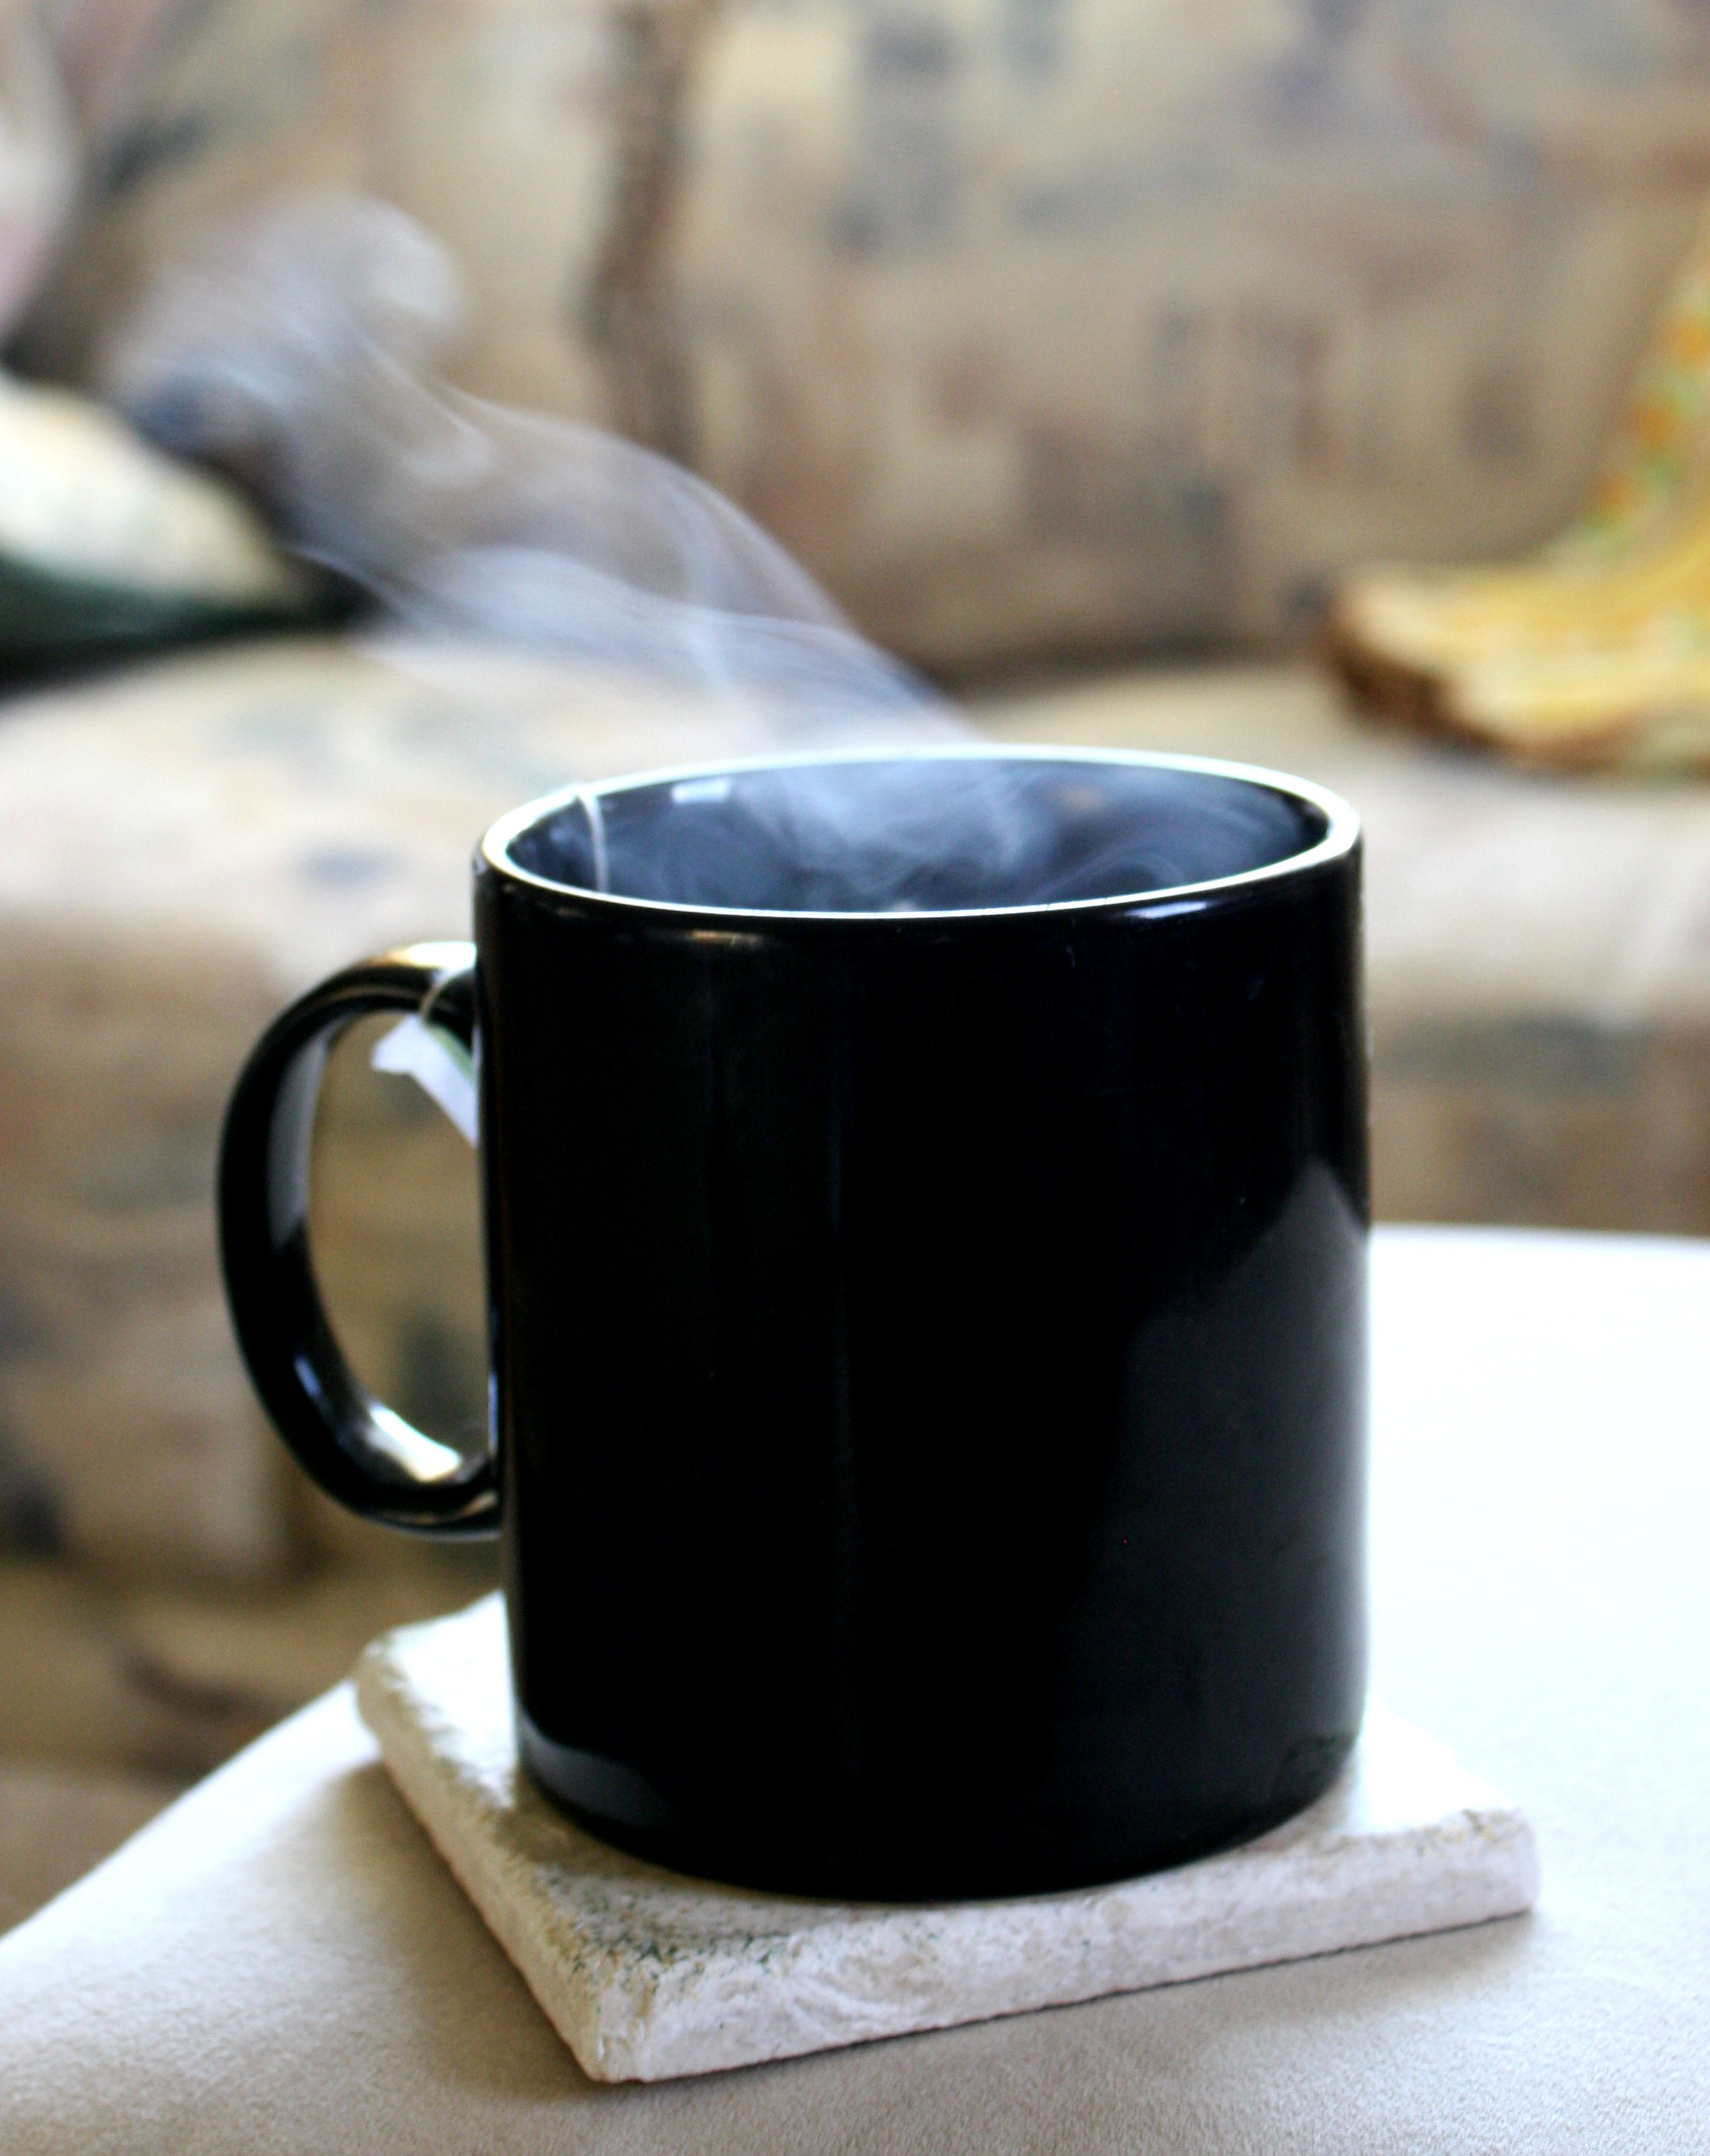 Steam Rising From Cup Of Hot Tea